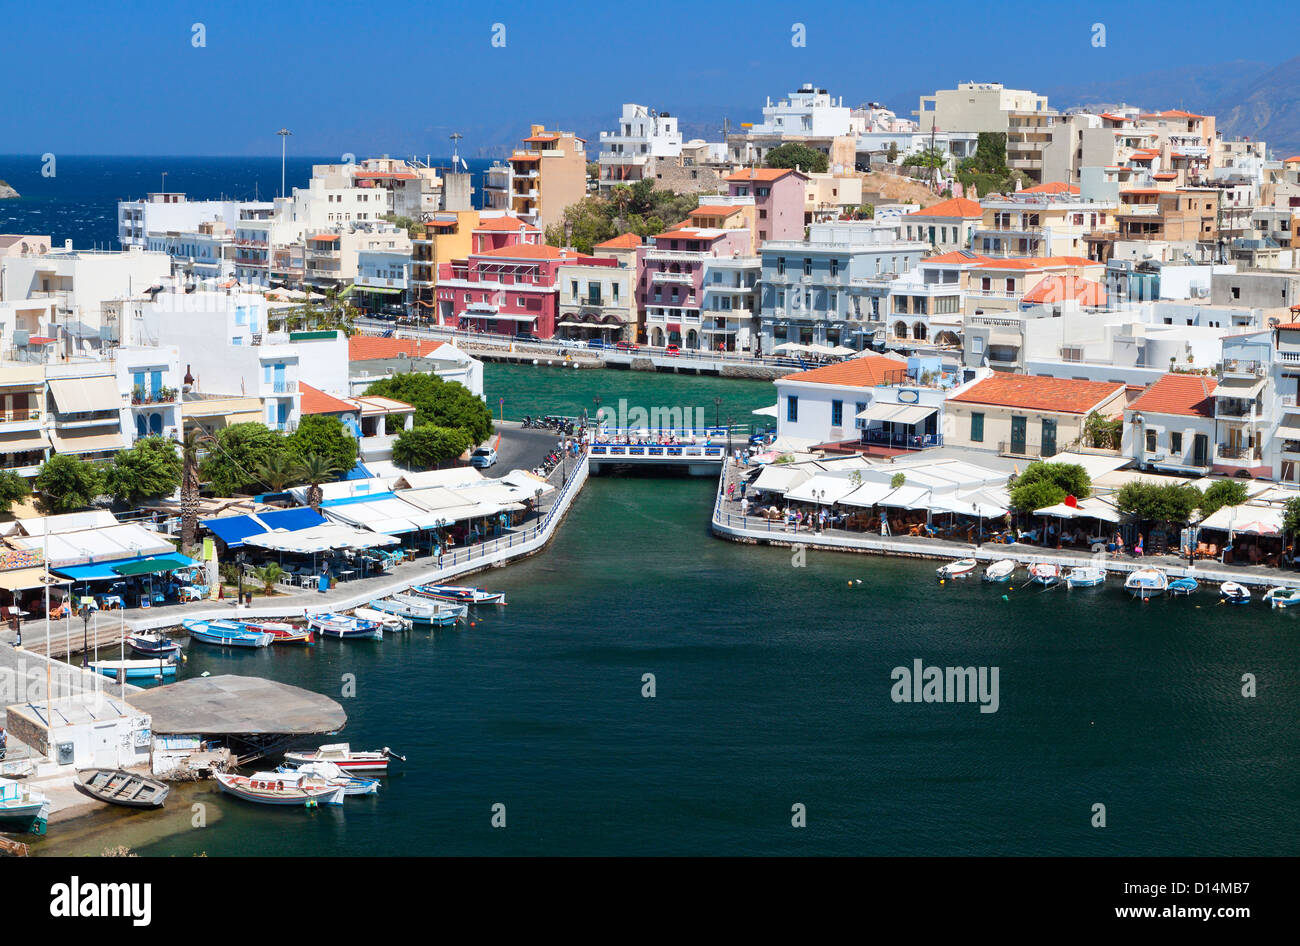 Aghios Nikolaos city at Crete island in Greece. View of the harbor - Stock Image